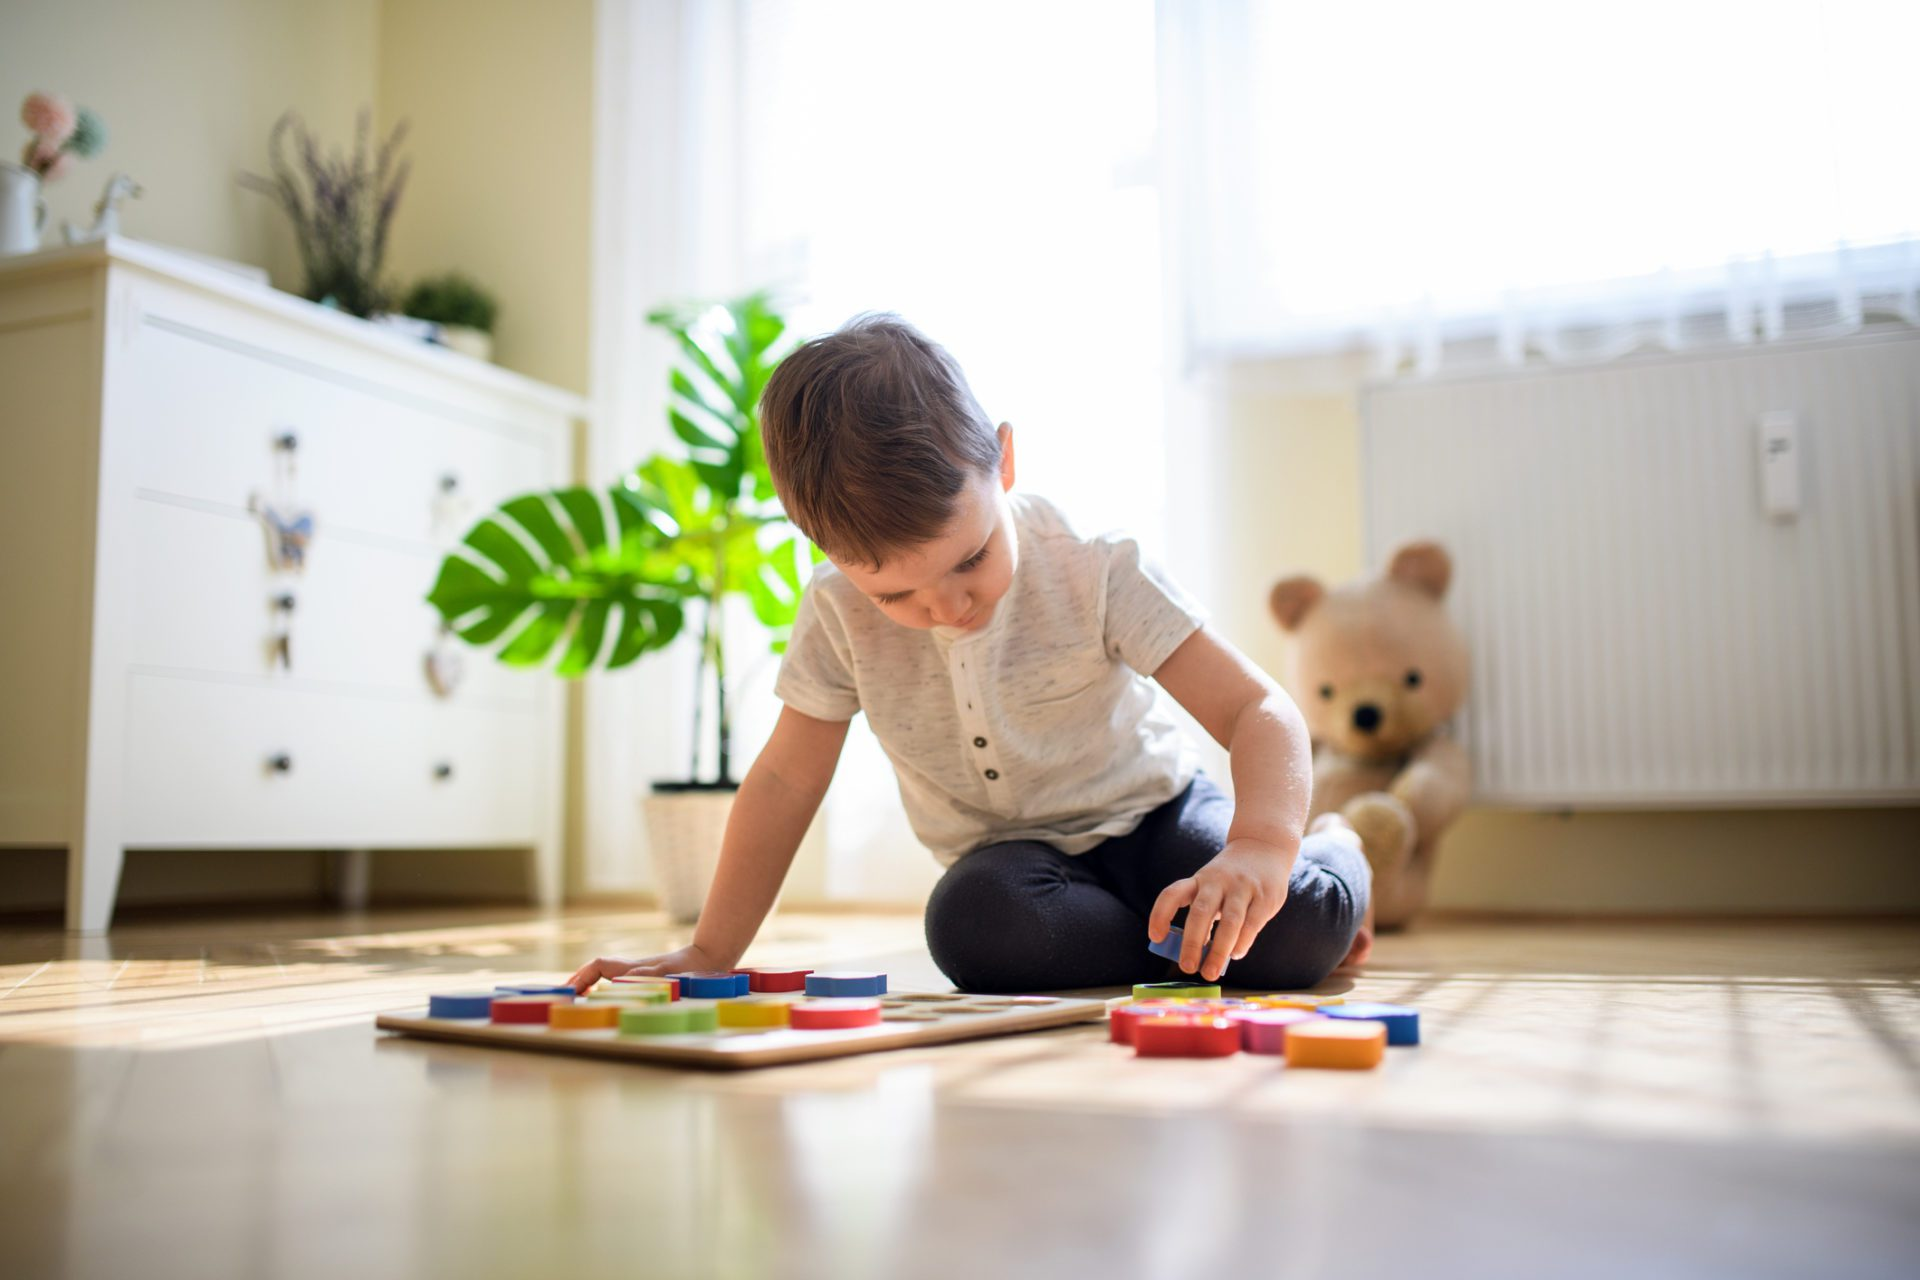 Small boy indoors at home, playing on floor.